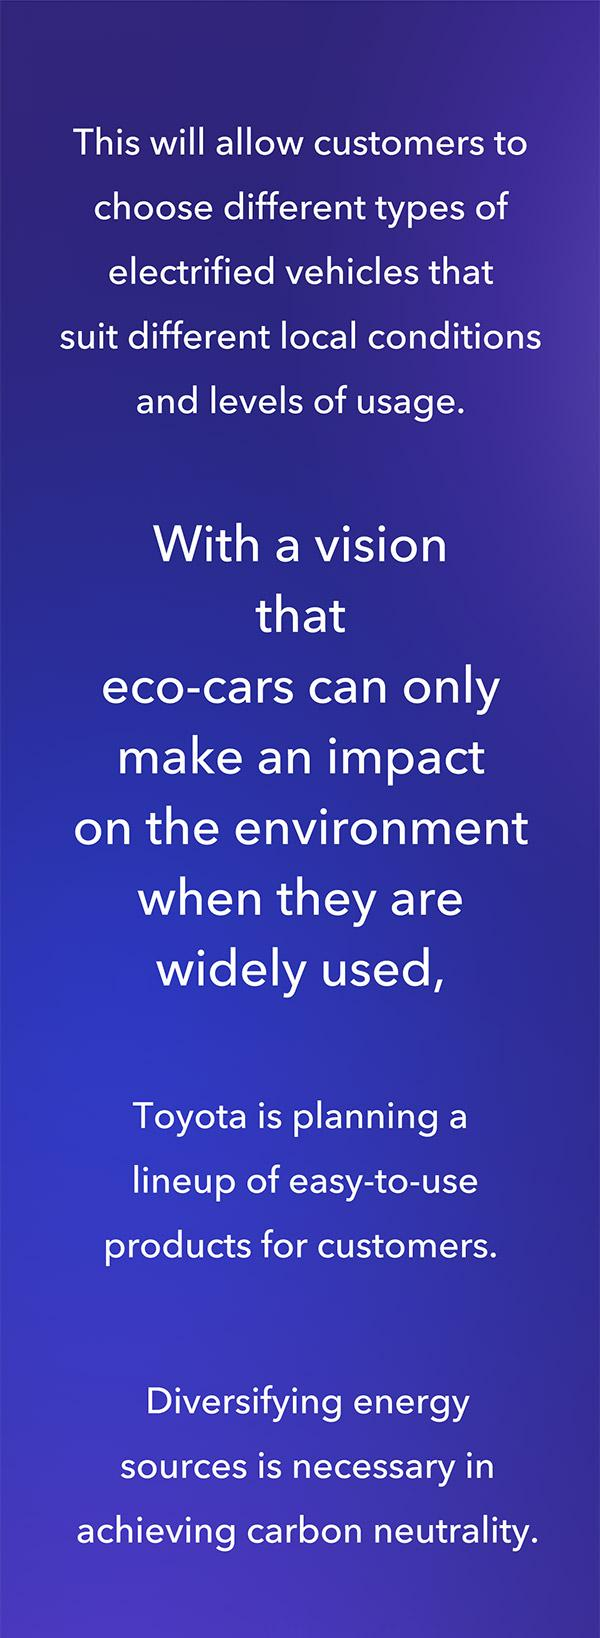 Toyota's vision is that eco-cars can only make an impact on the environment when they are widely used.